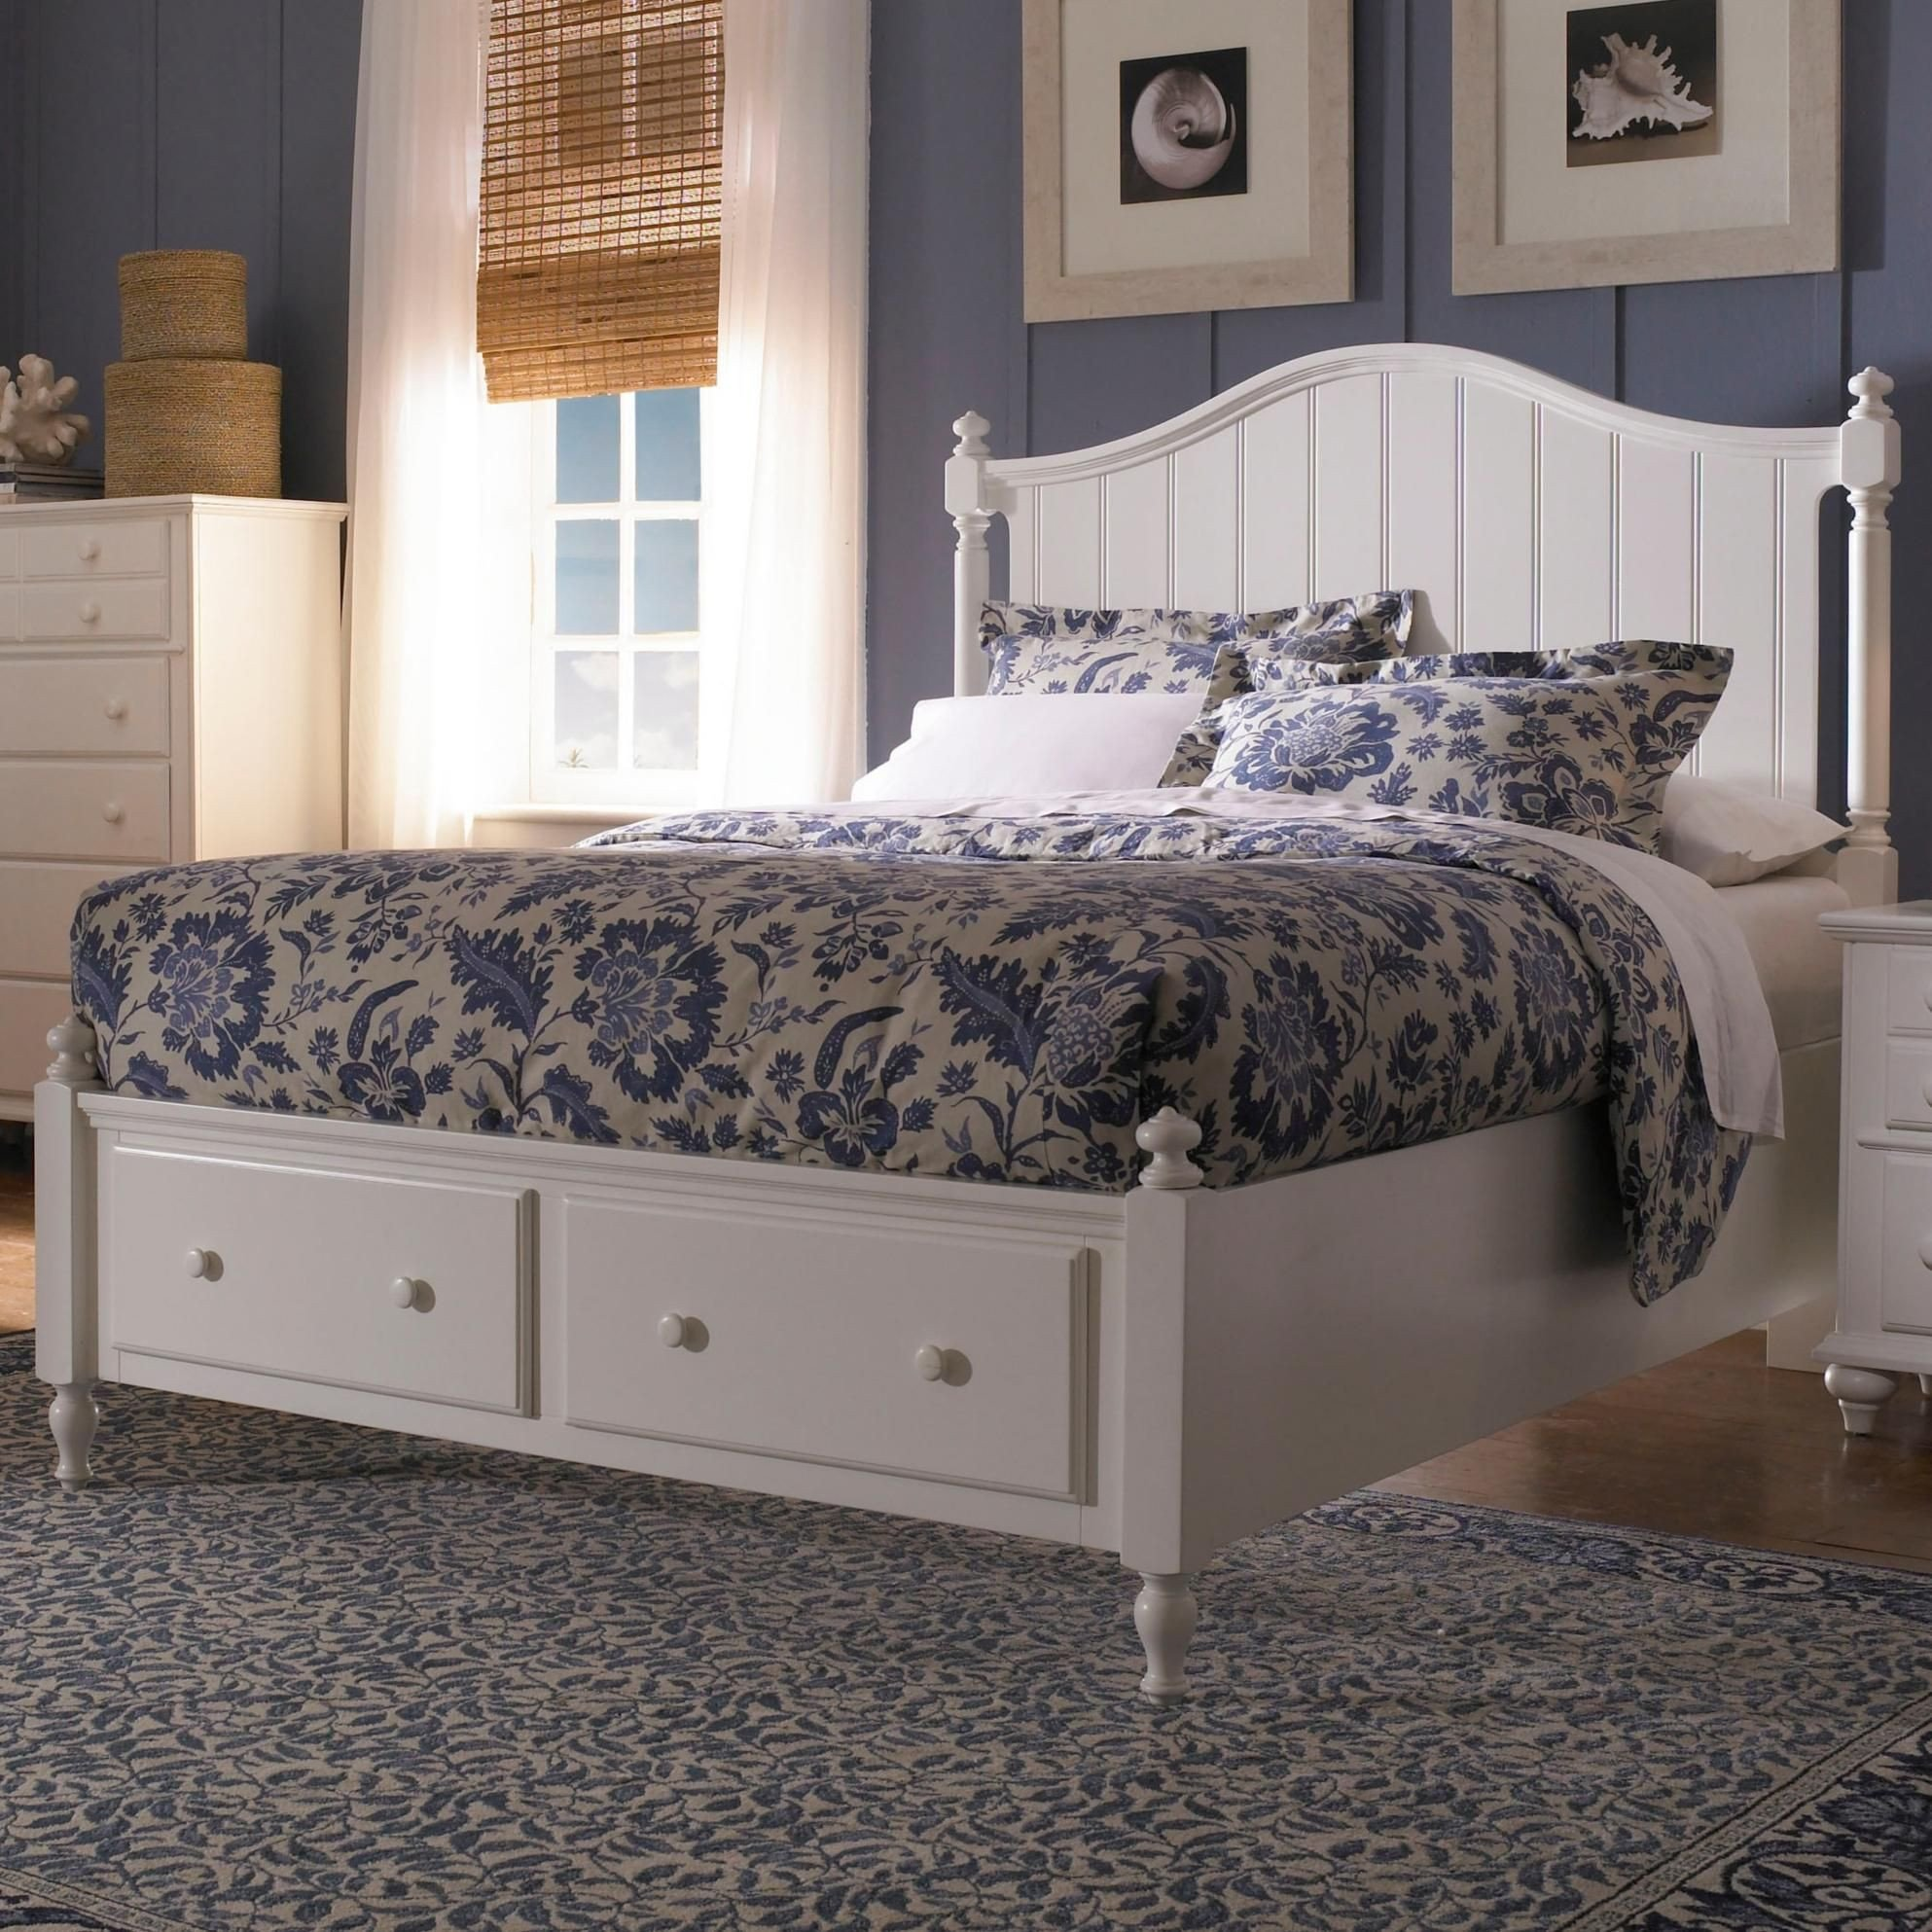 Value City Bedroom Set Fresh Hayden Place Queen Headboard and Storage Footboard Bed by